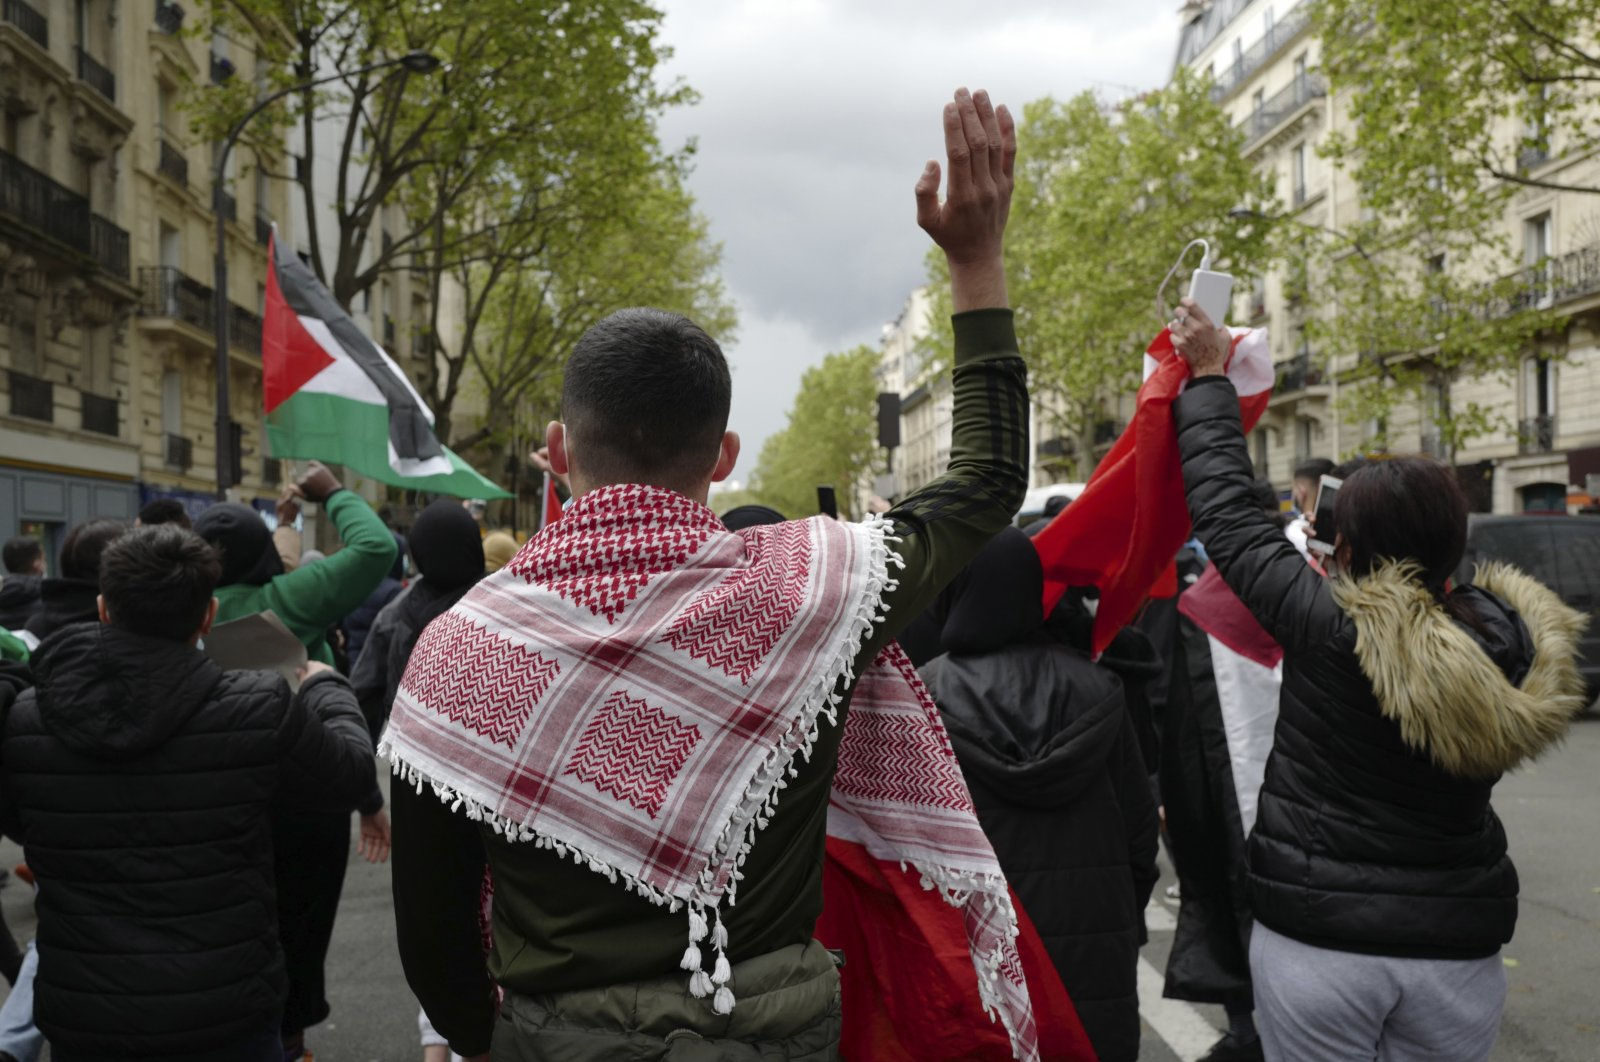 Demonstrators march during a banned protest in support of Palestinians in the Gaza Strip, in Paris, France, Saturday, May 15, 2021. (AP Photo)